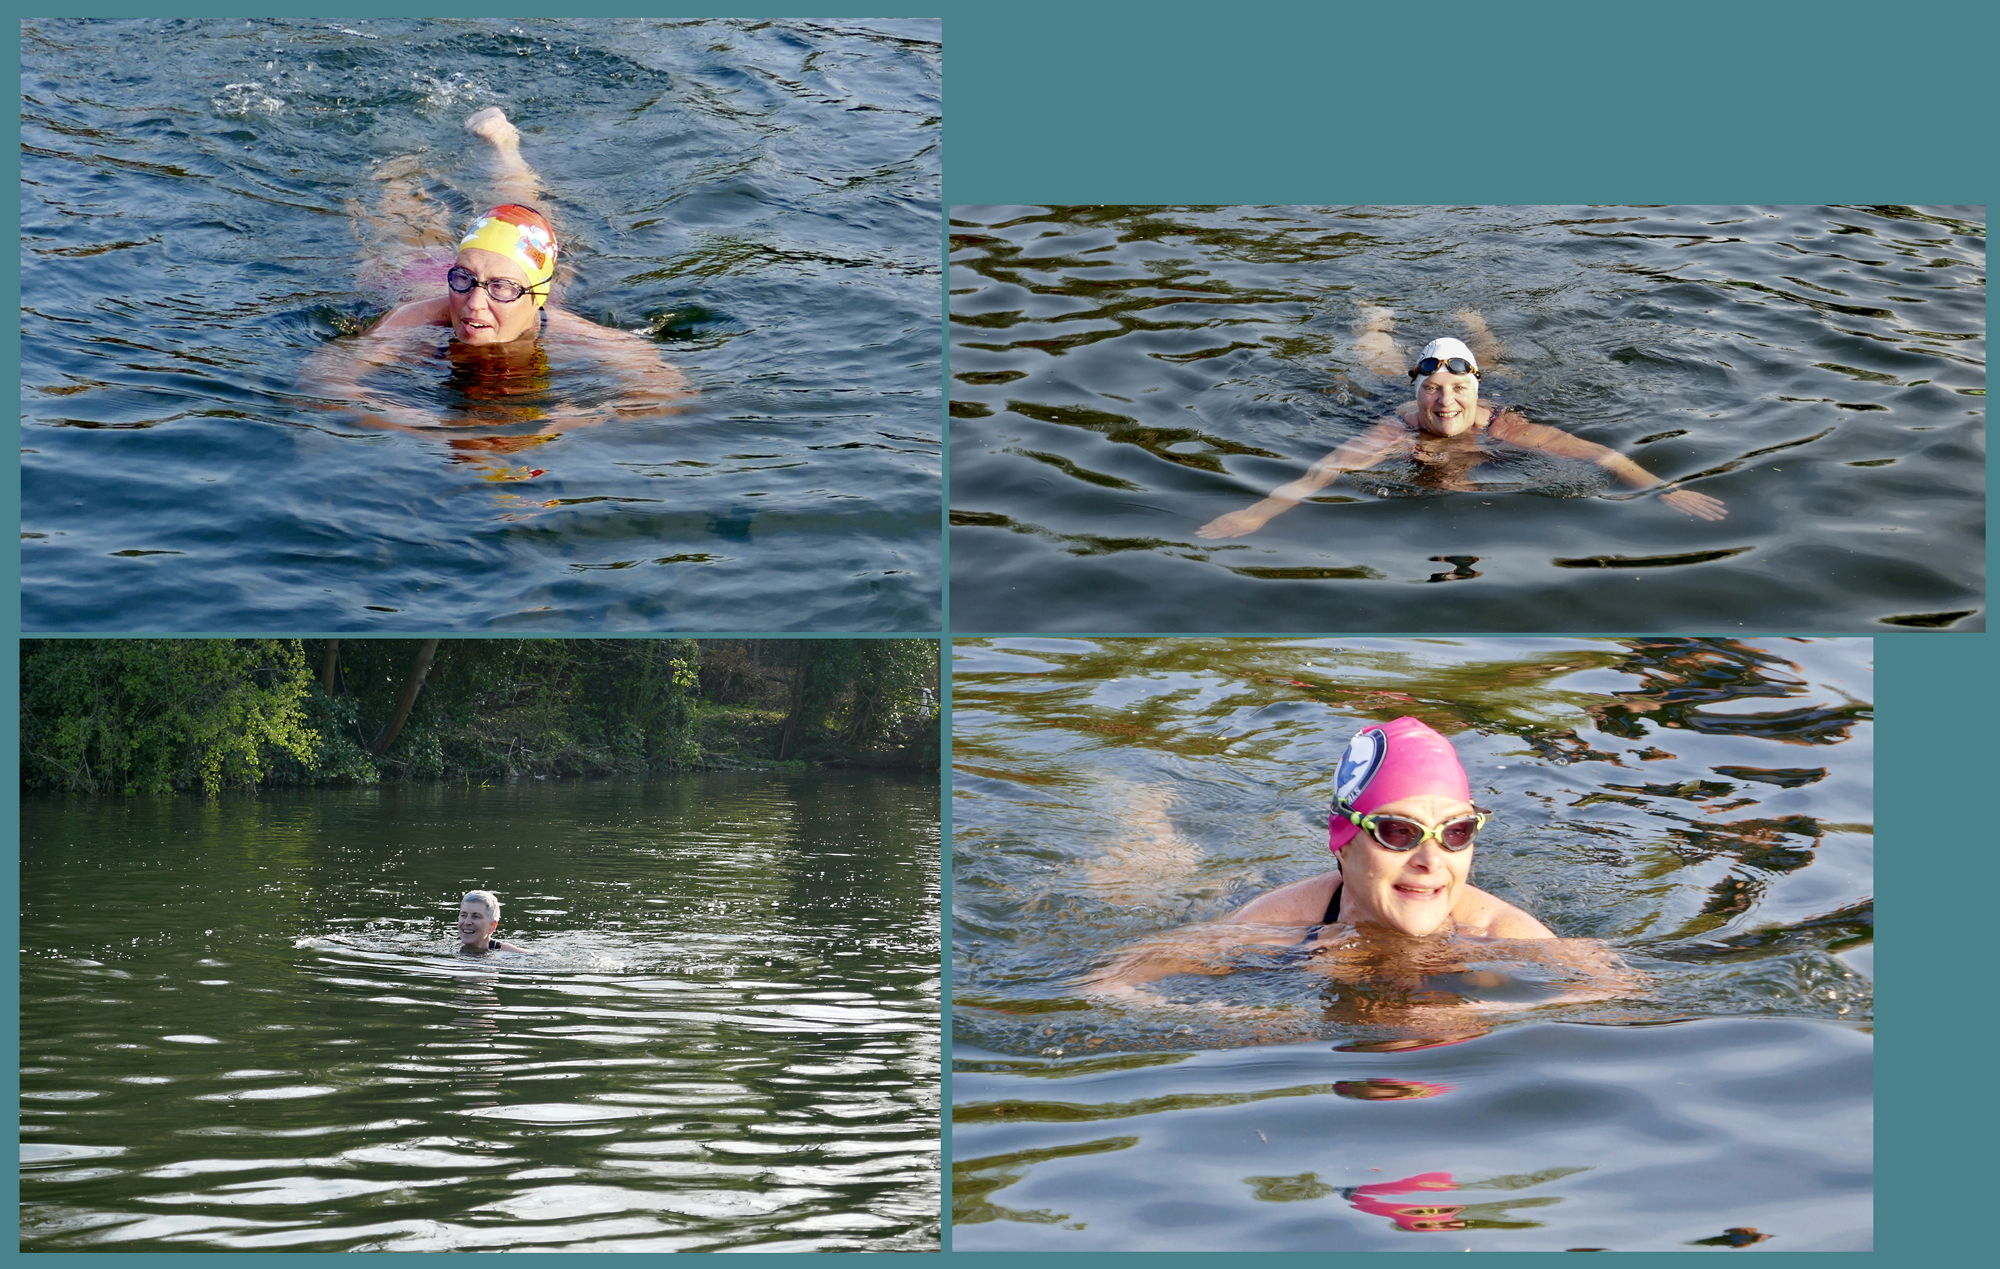 swimmers in water